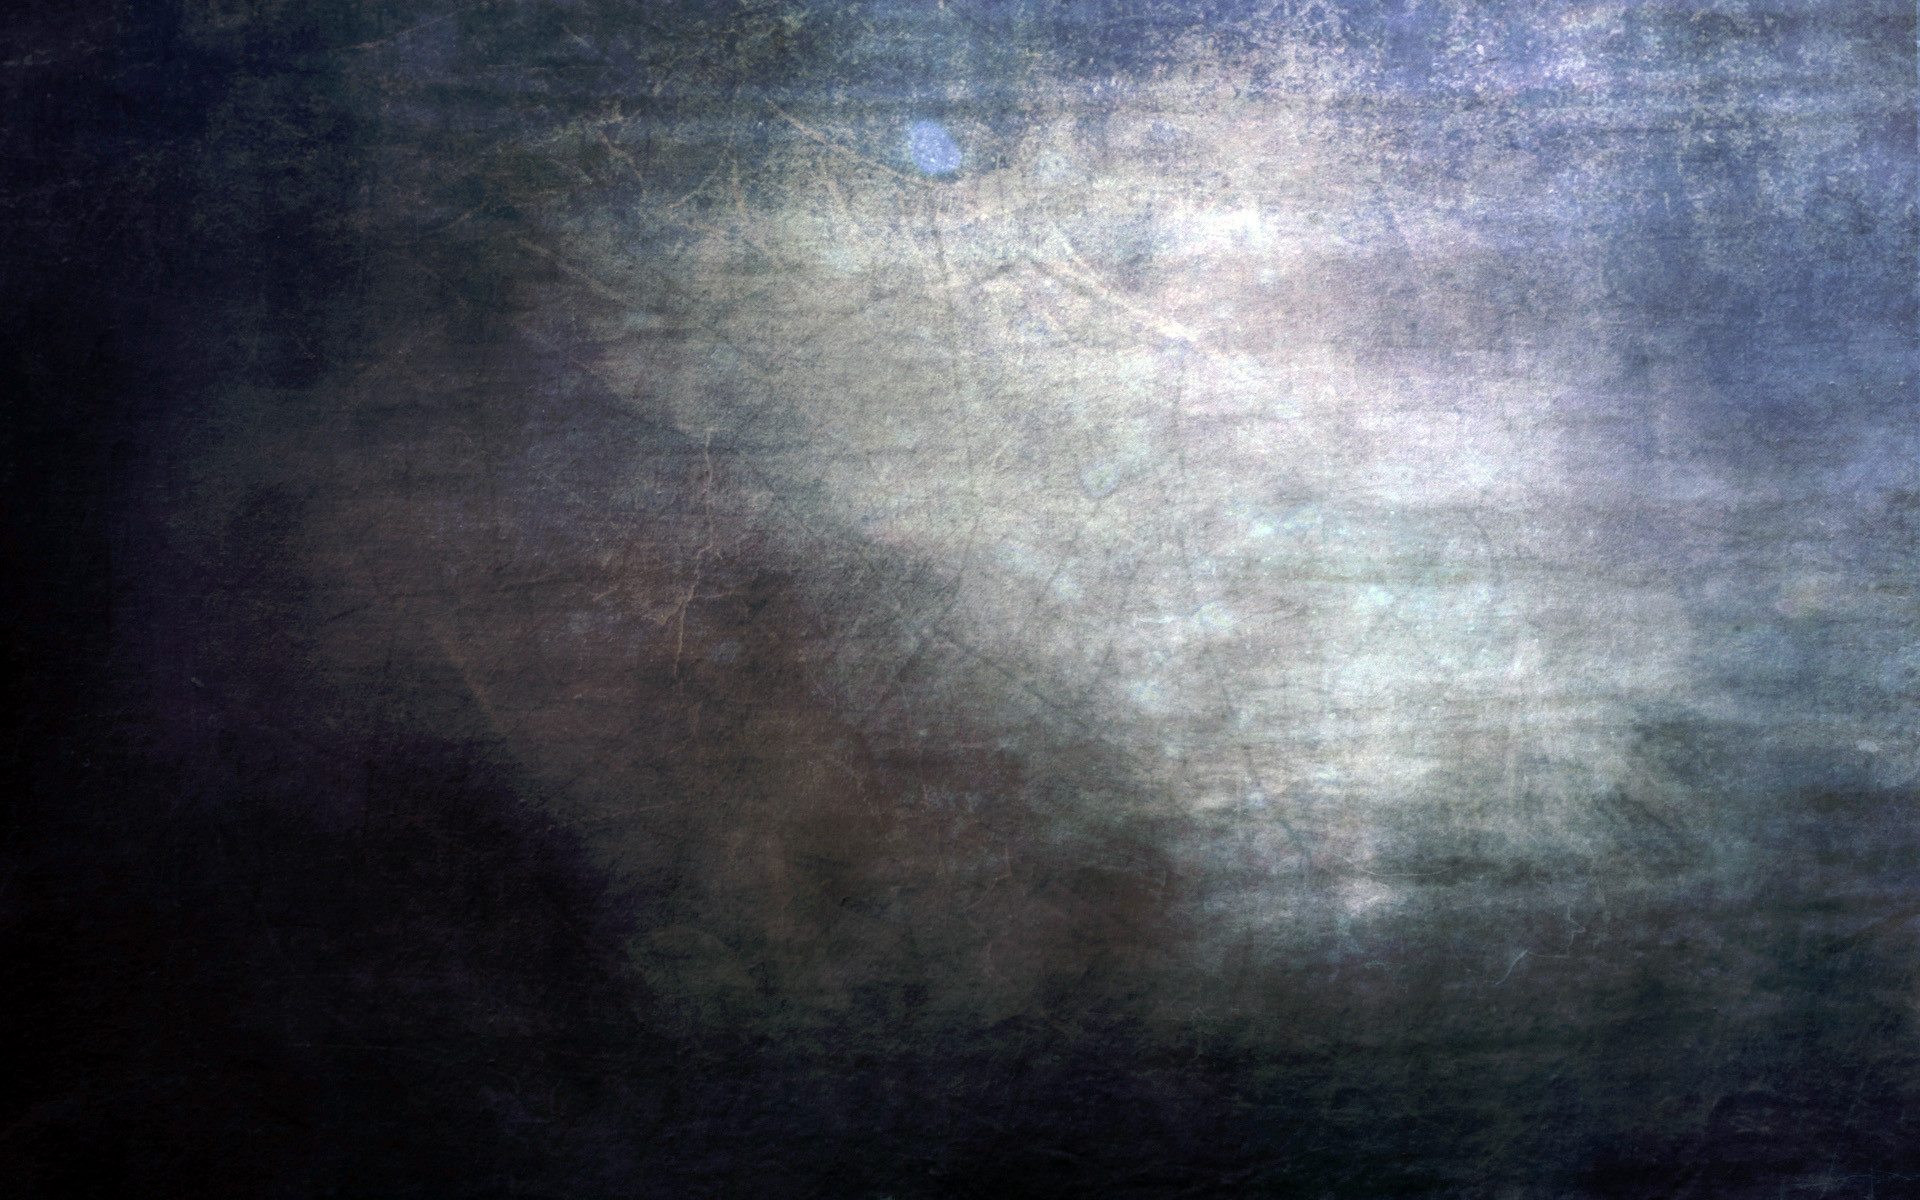 Textured wallpaper backgrounds 61 images - White grunge background 1920x1080 ...